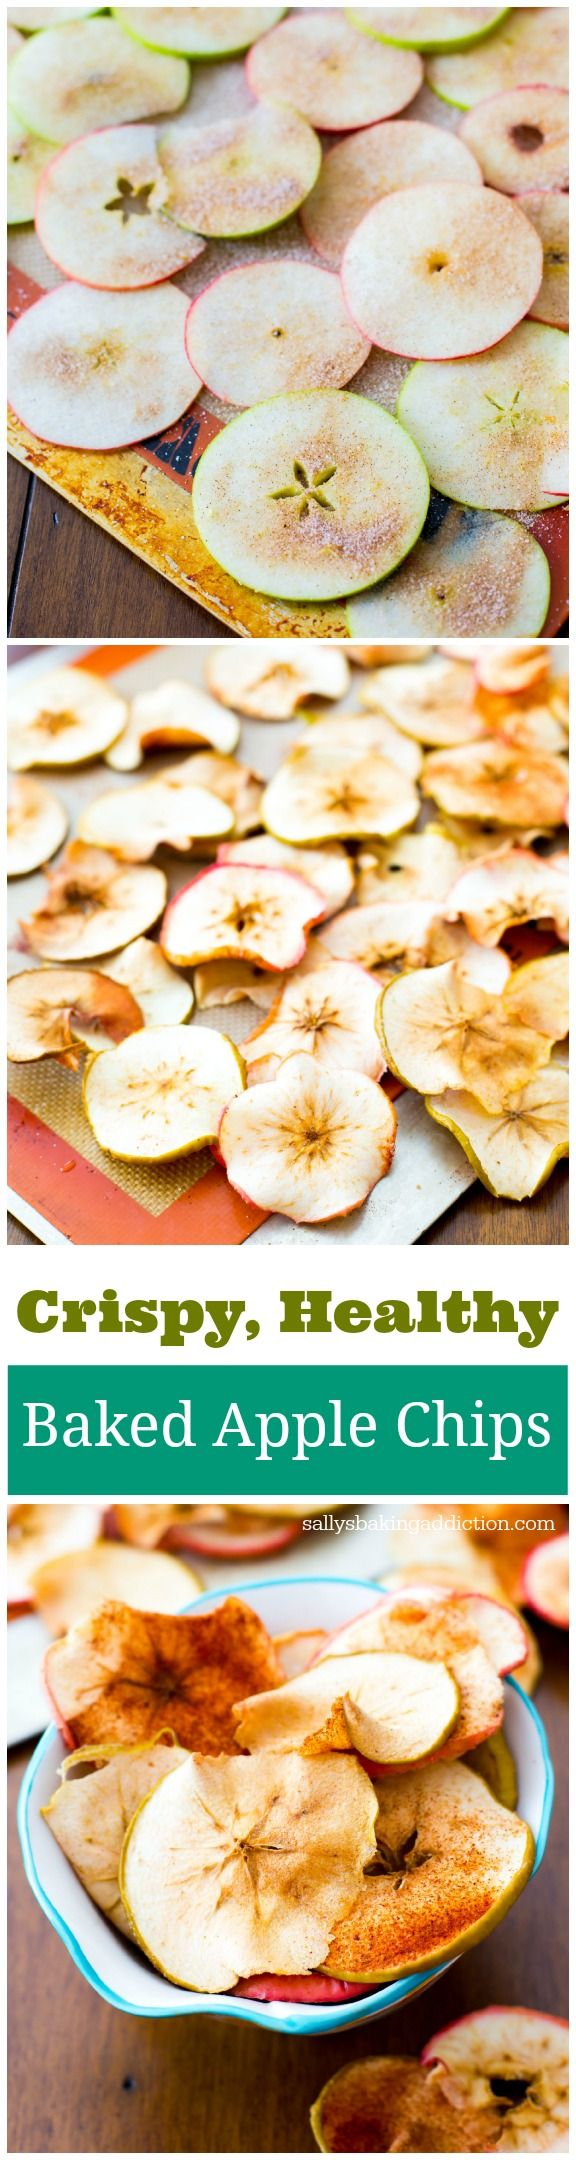 Crunchy, simple, healthy Baked Apple Chips. These are so addicting and all you are eating is apples. @Sally [Sally's Baking Addiction]